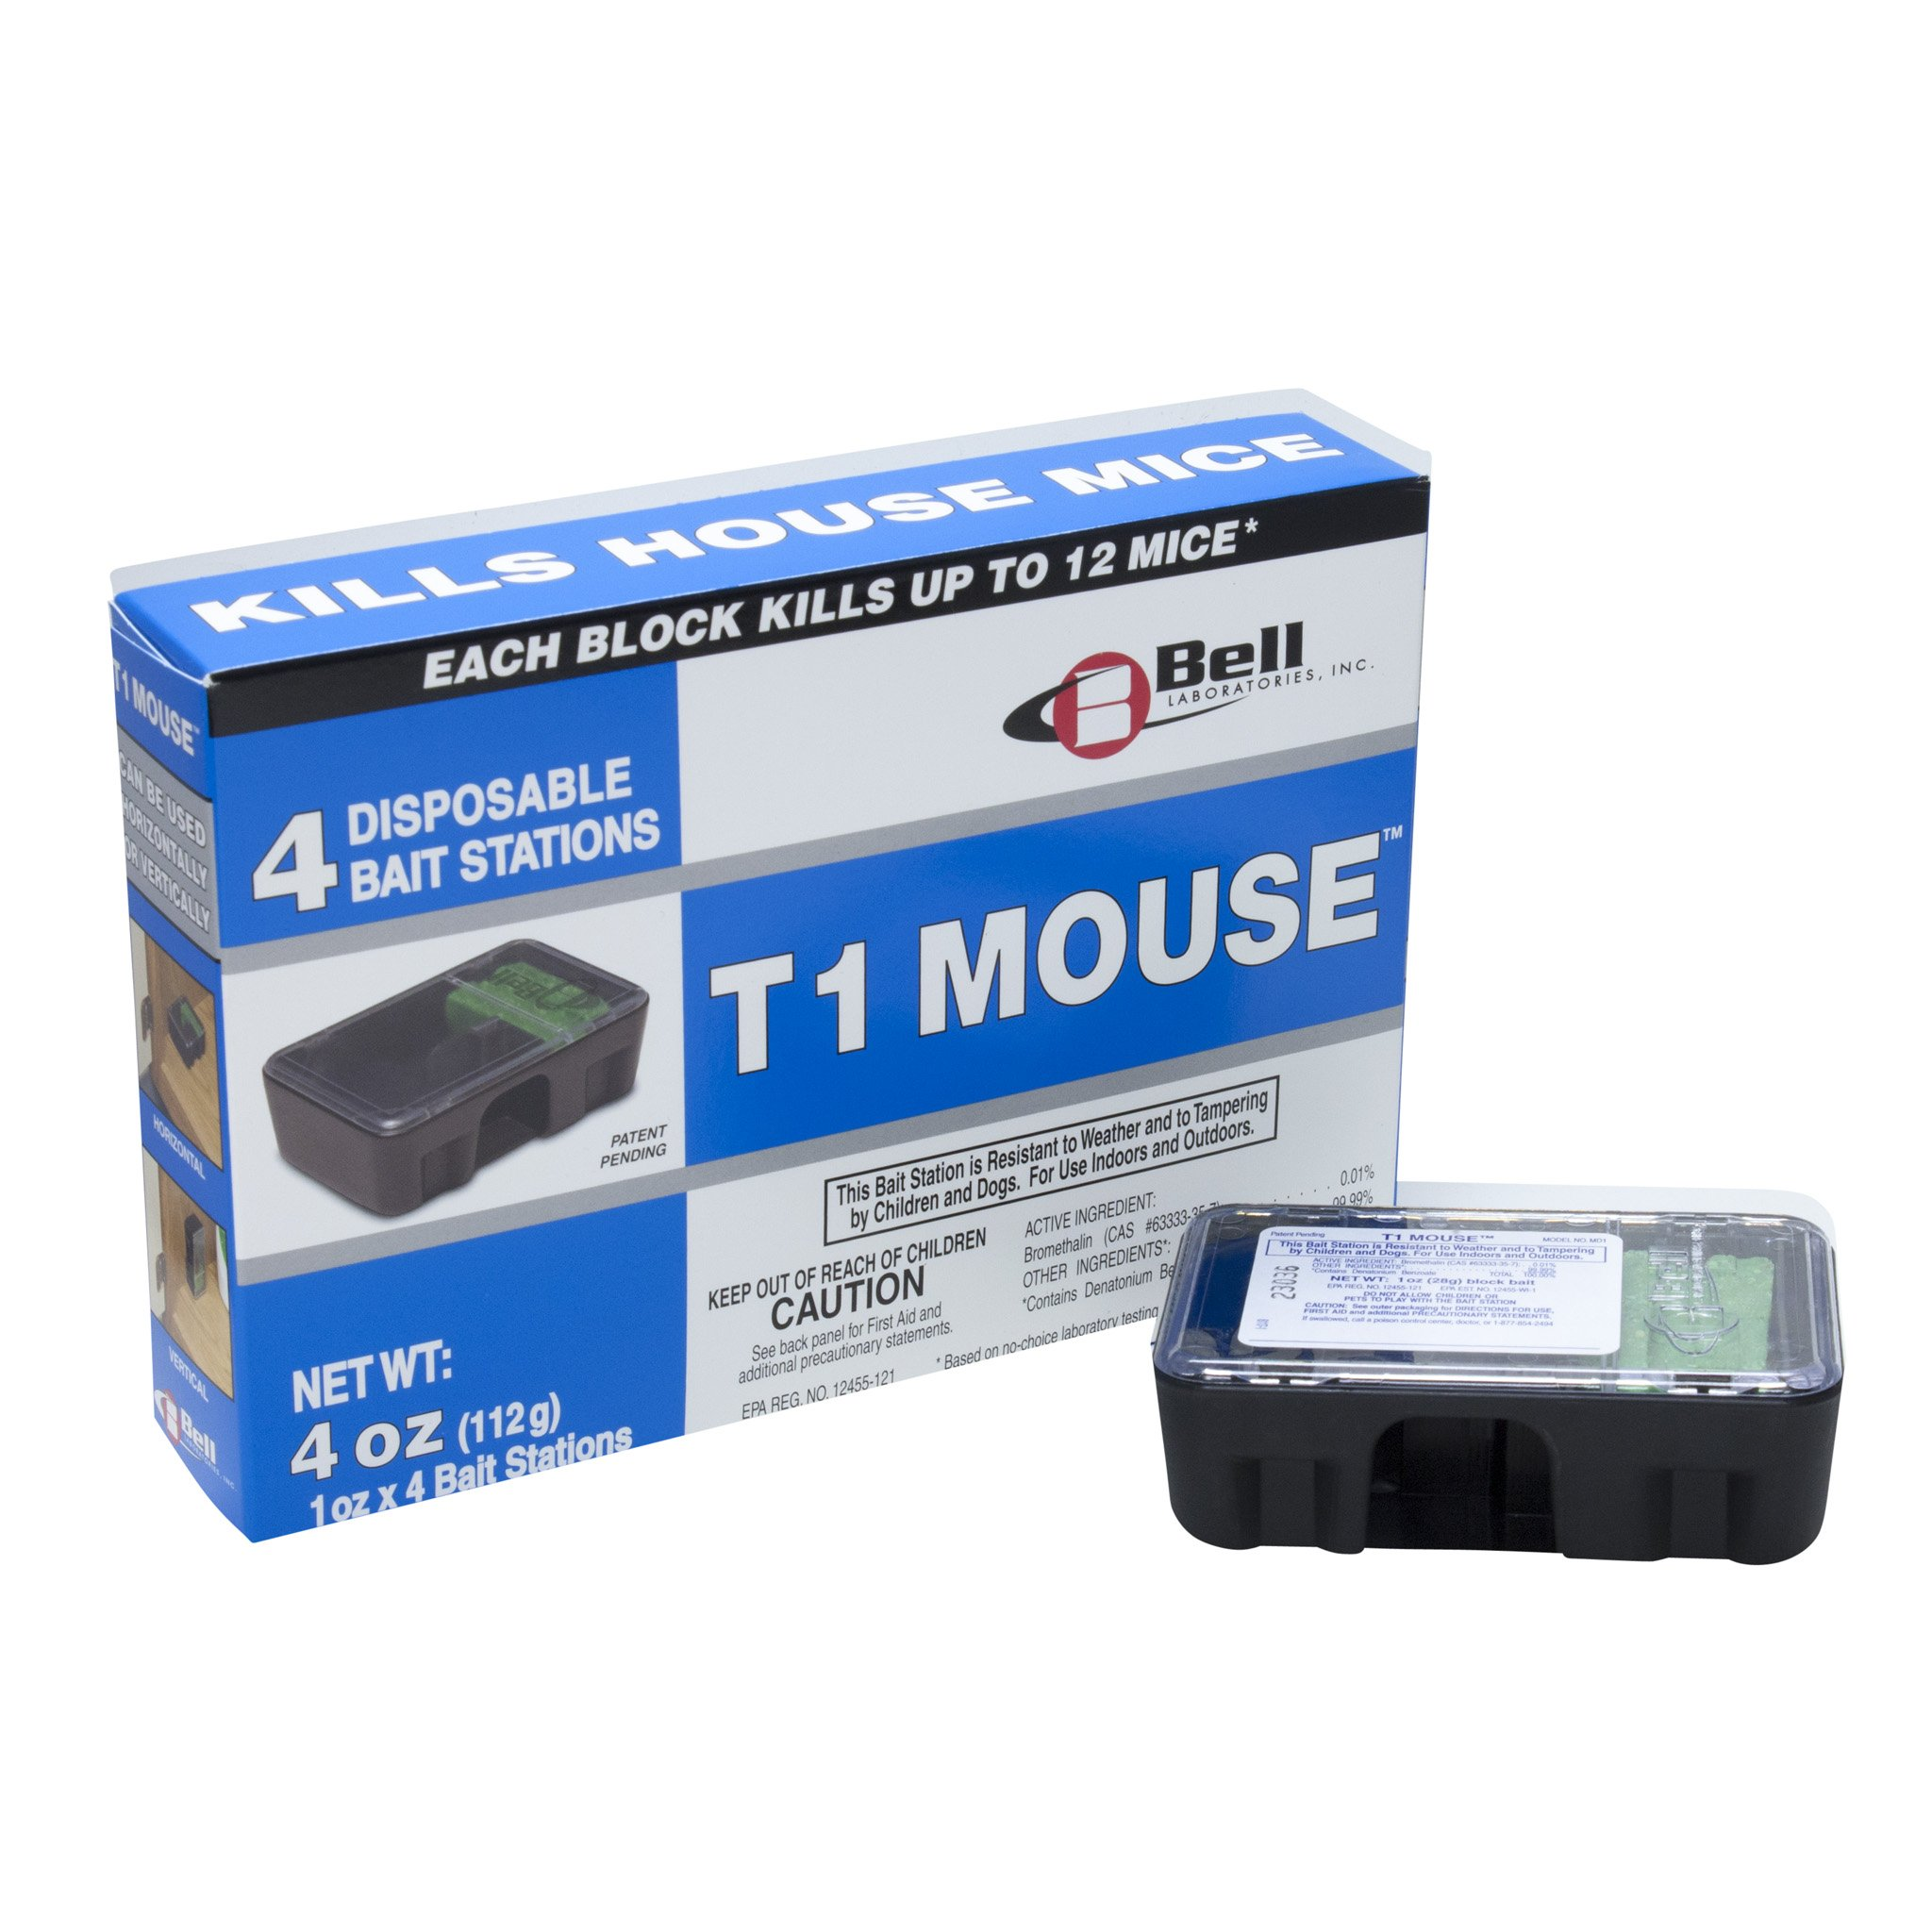 T1 Mouse Disposable Mouse Bait Stations - CASE 12 STATIONS